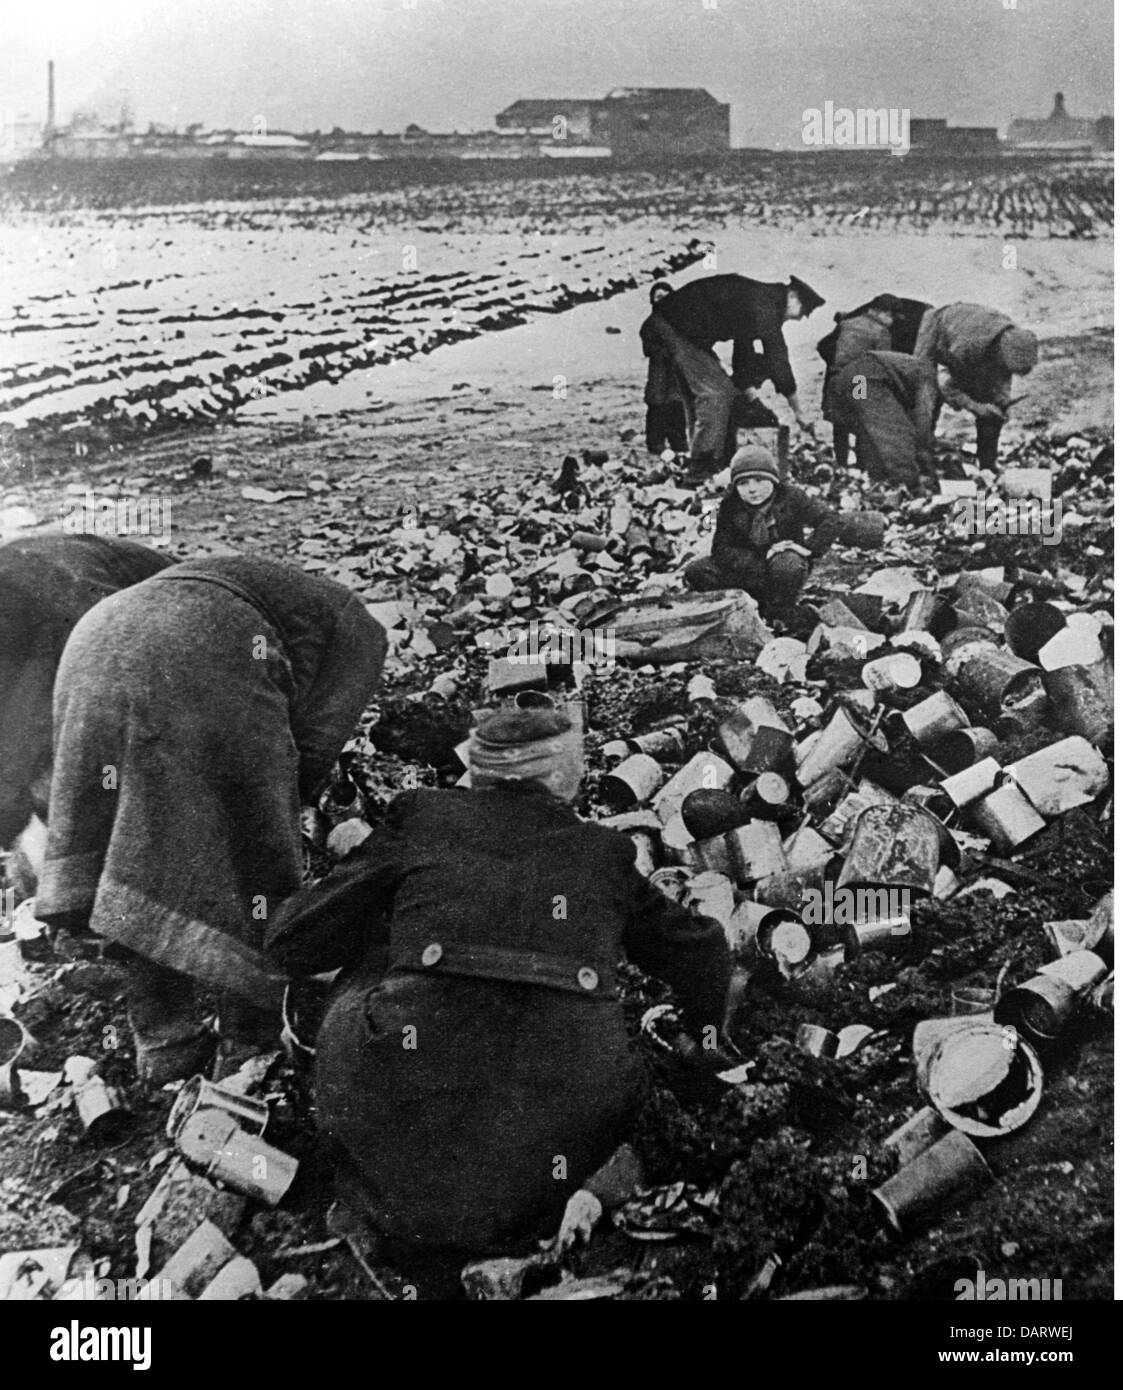 post war period, misery and hardship, Germany, food shortage, people searching in the garbage after eatables, 1945, - Stock Image